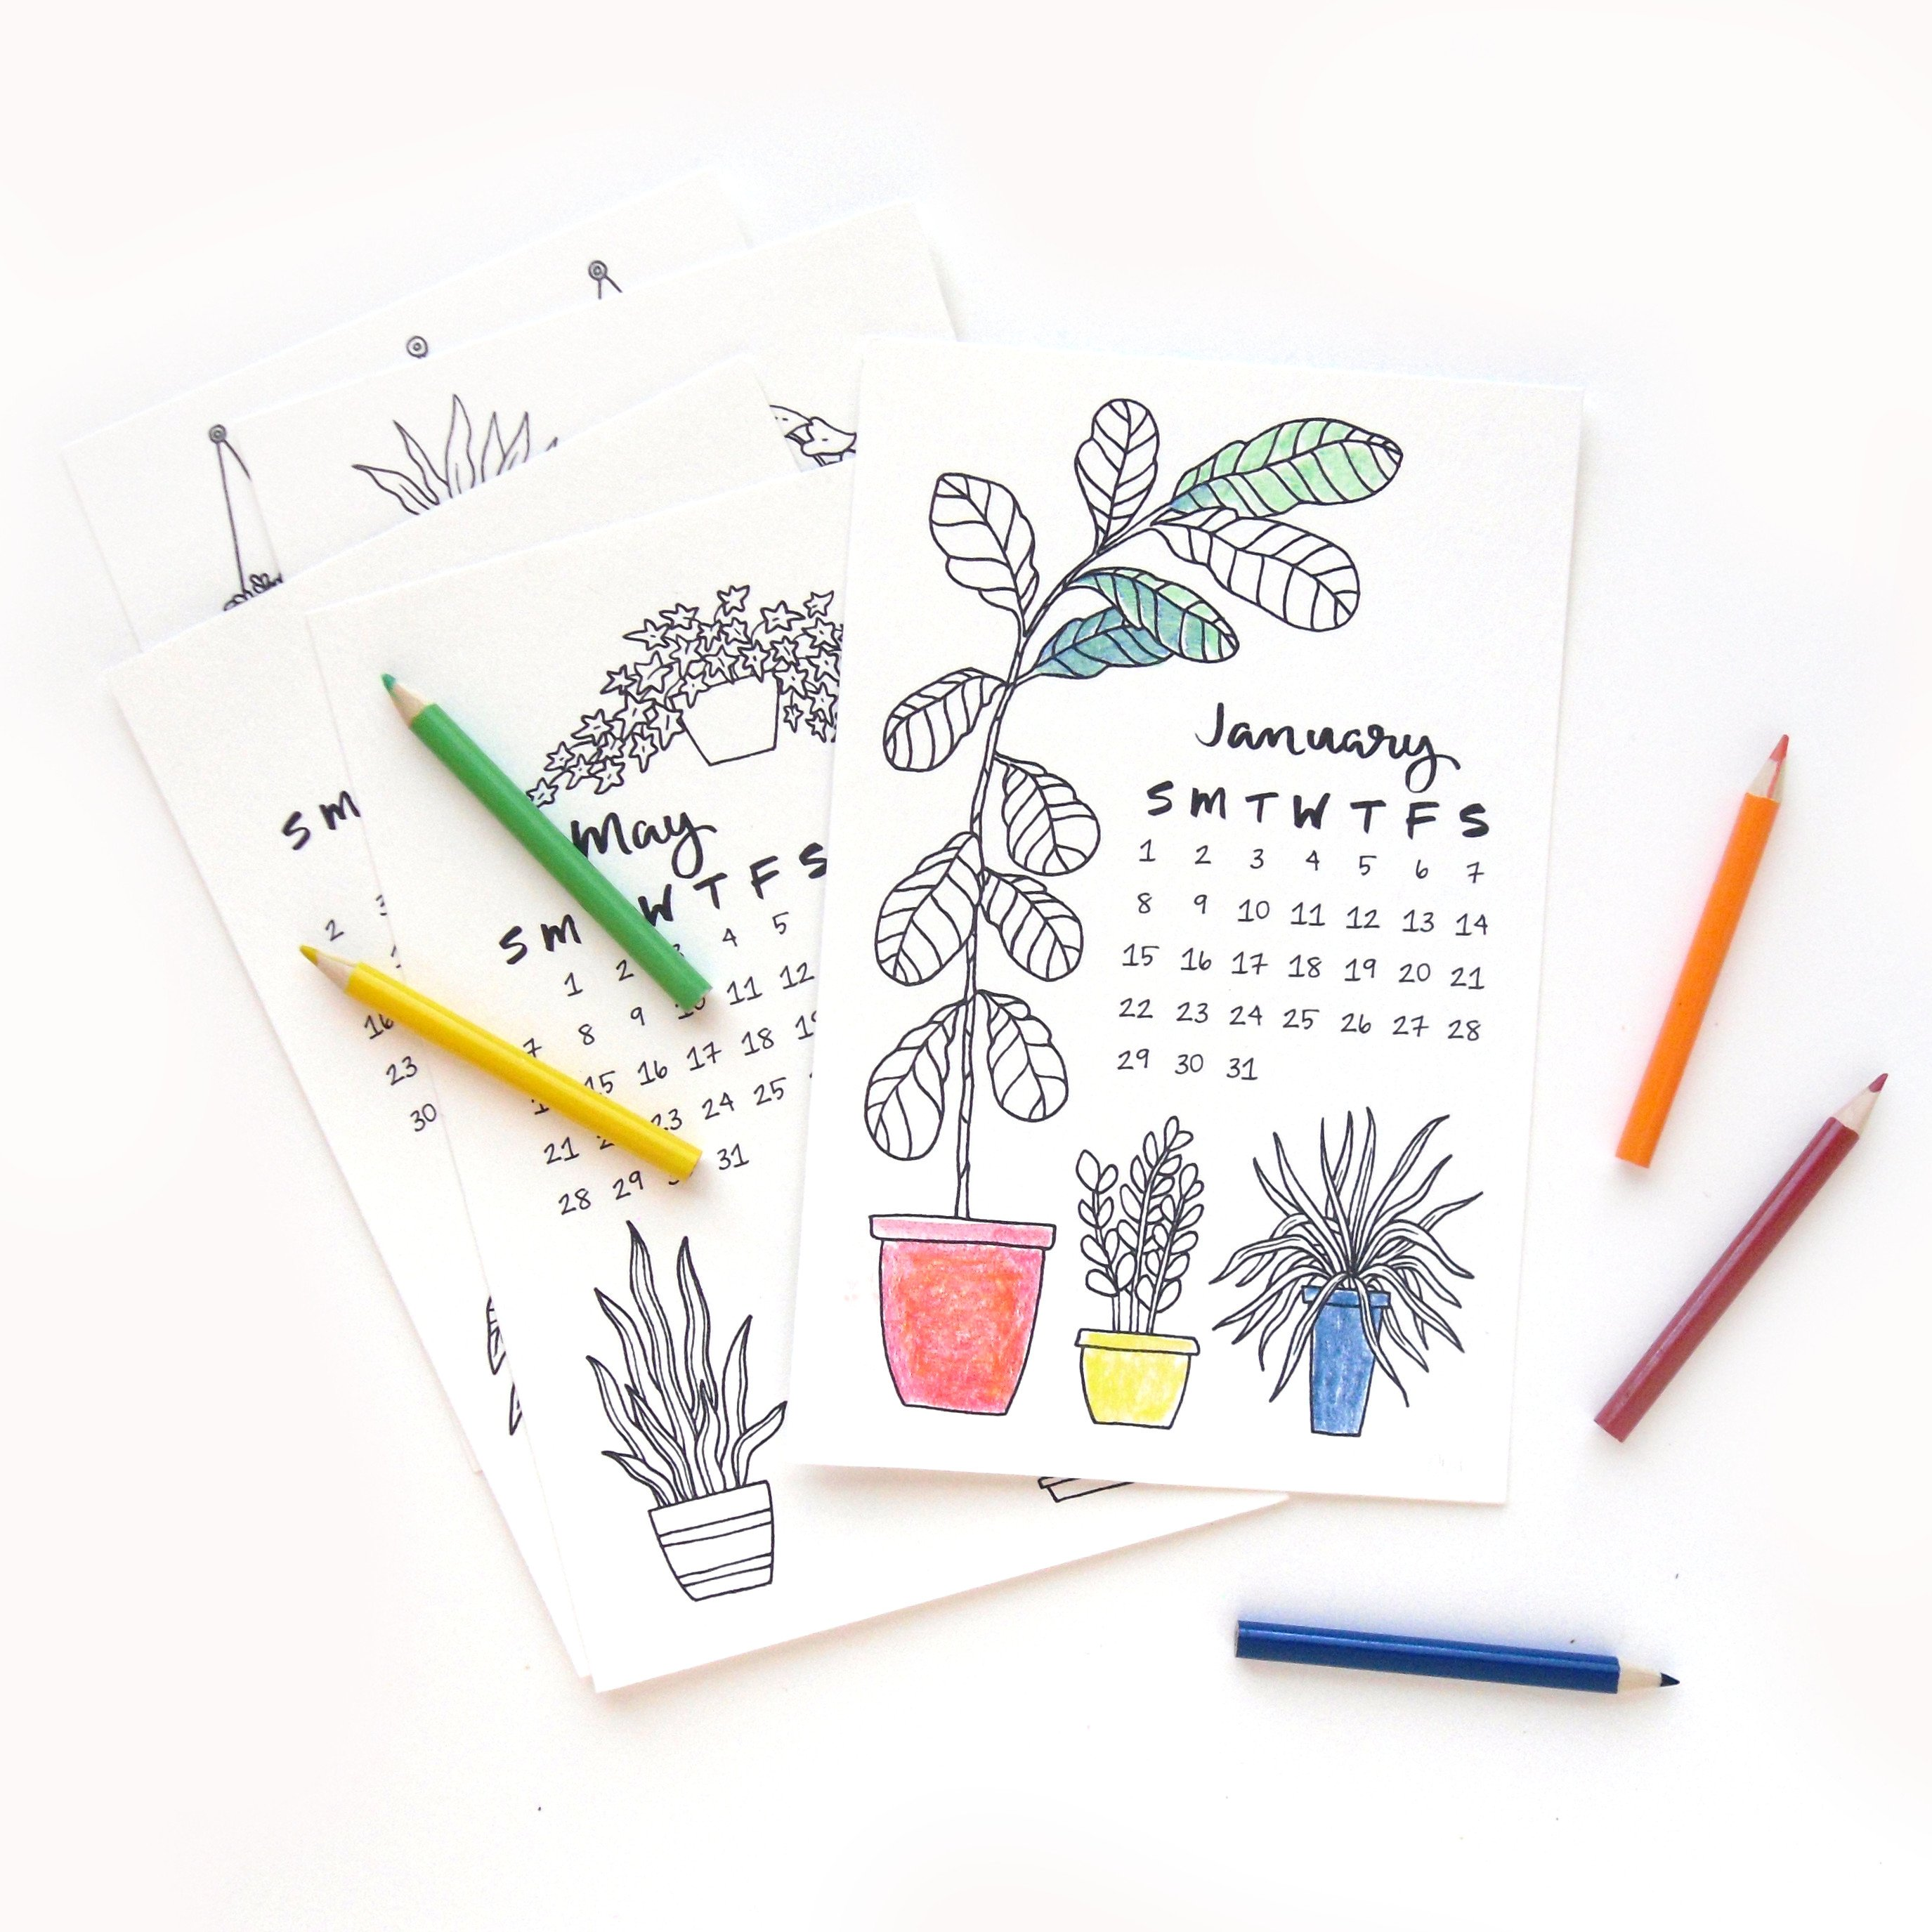 Coloring Desk Calendar 2019 With Sketchy Notions